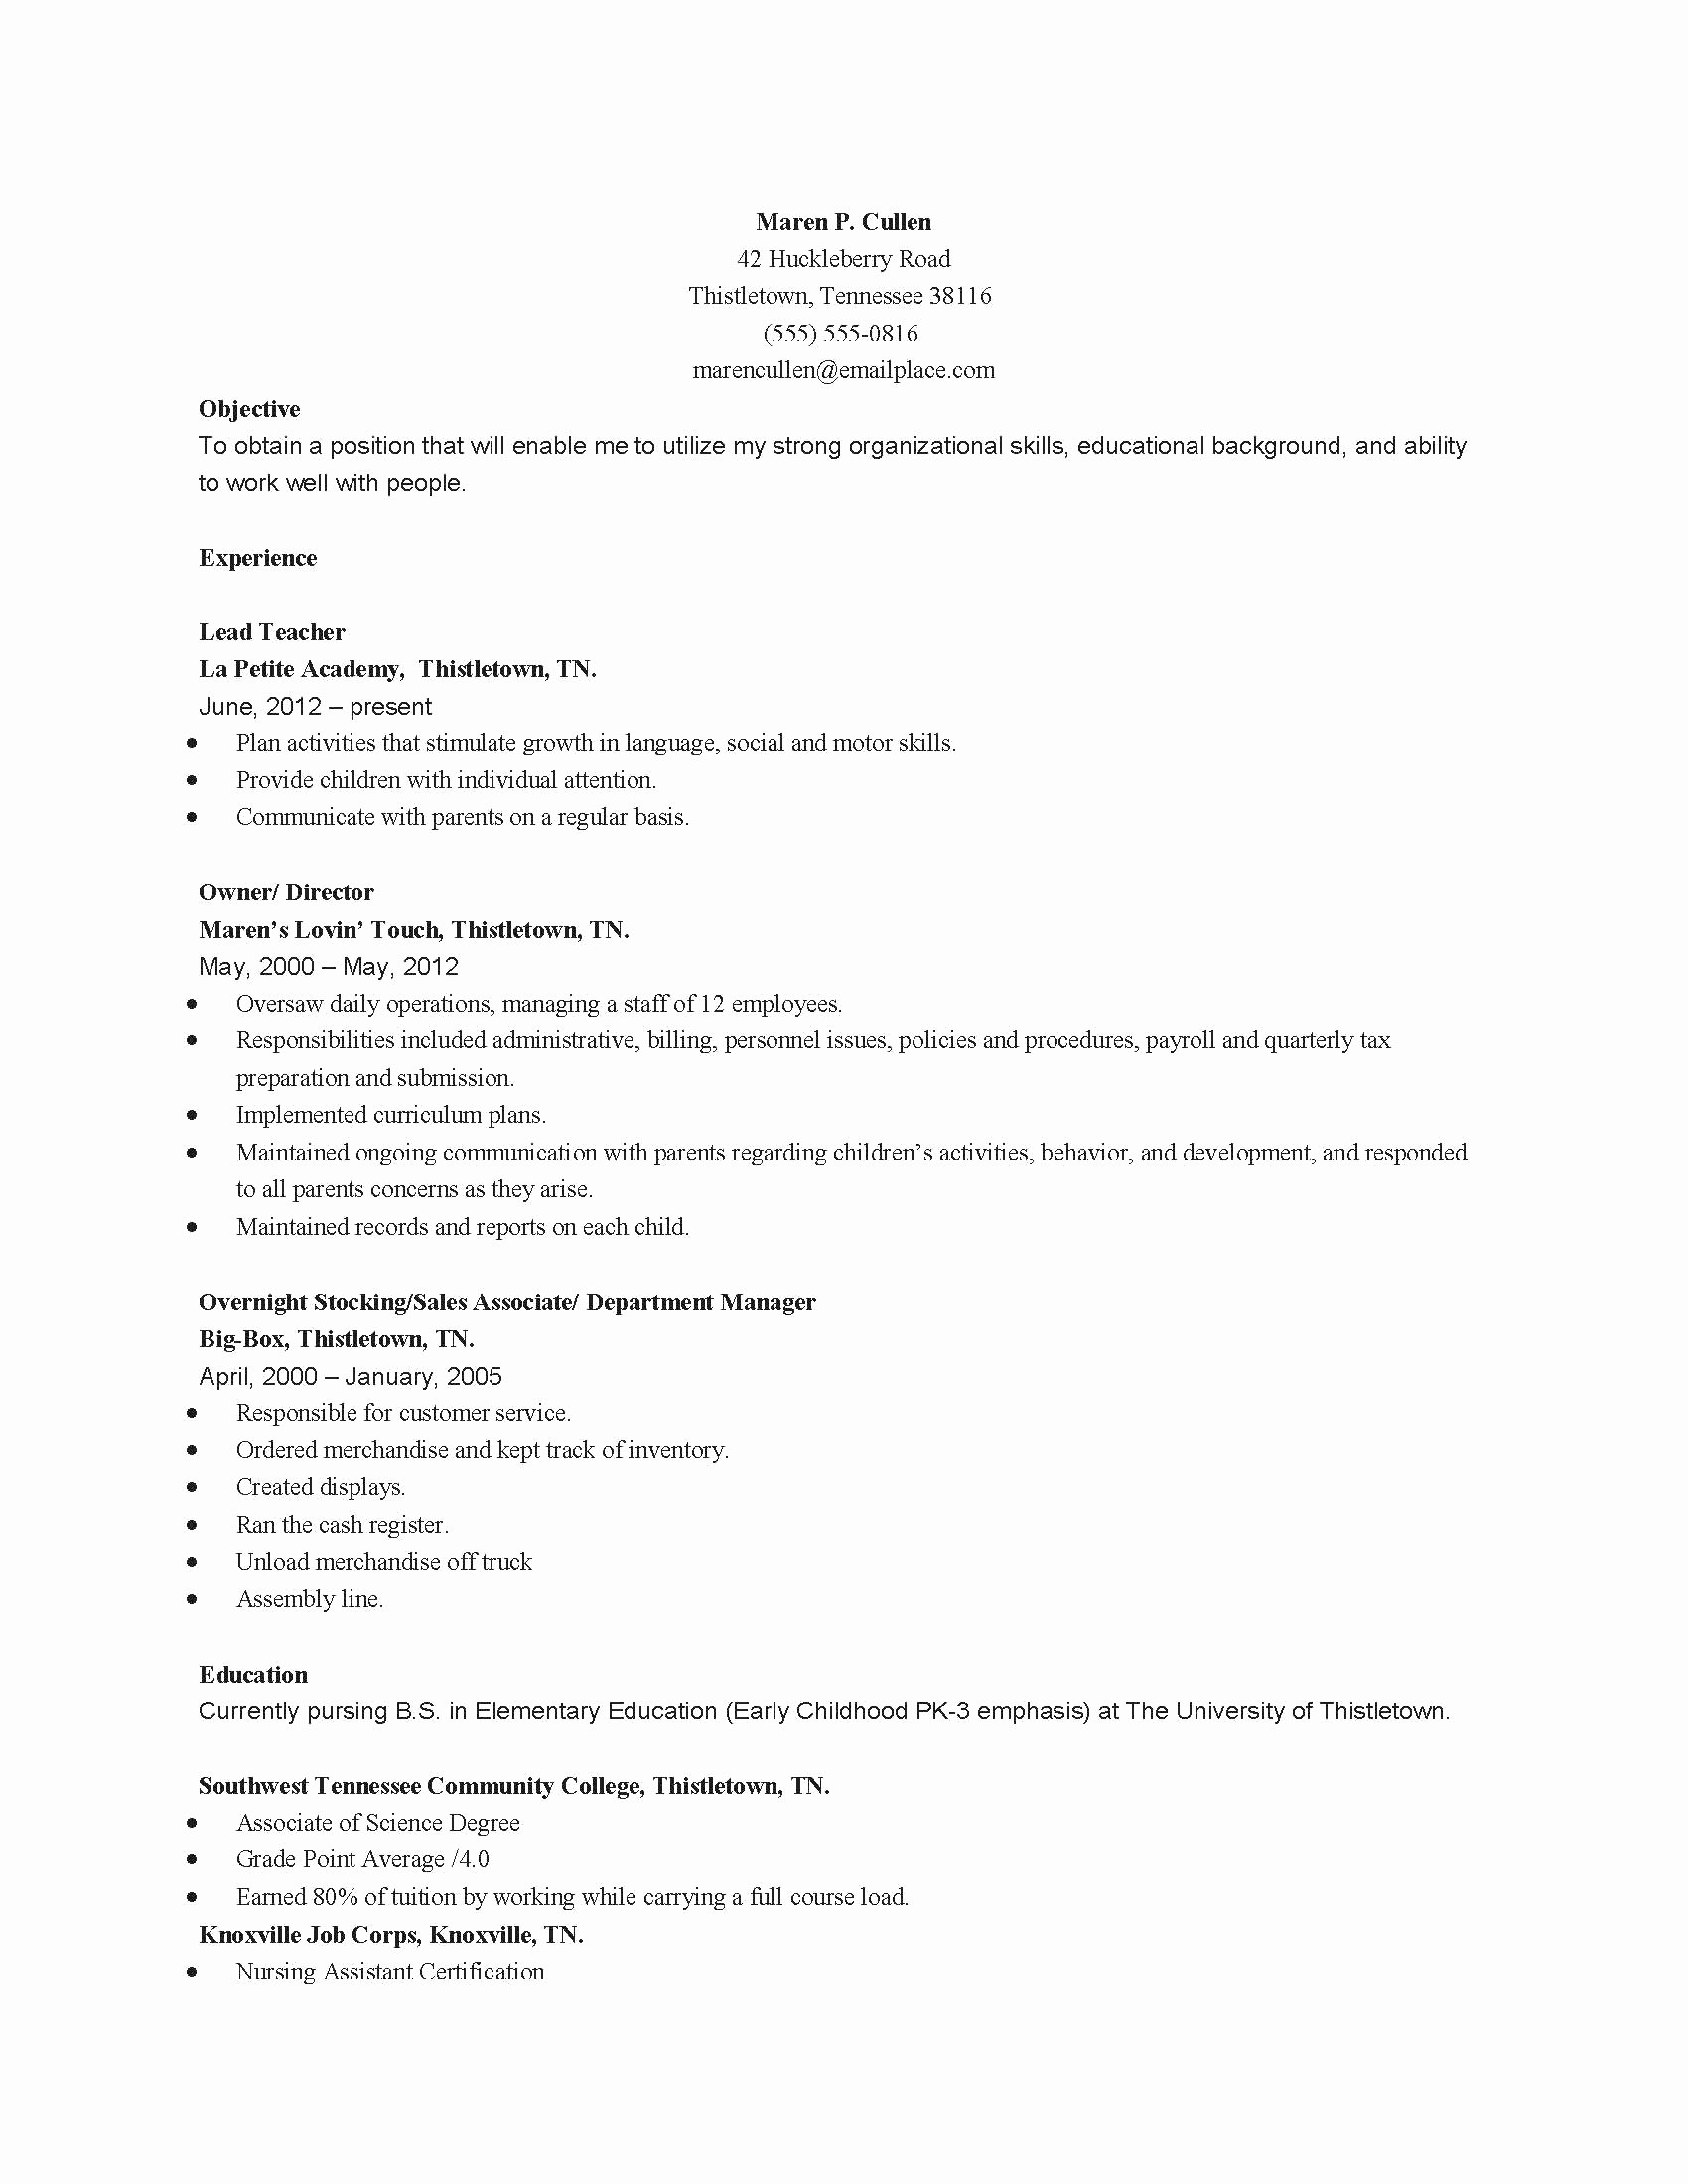 Daycare Teacher Resume Sample Beautiful Daycare Letter to Parents Template Collection